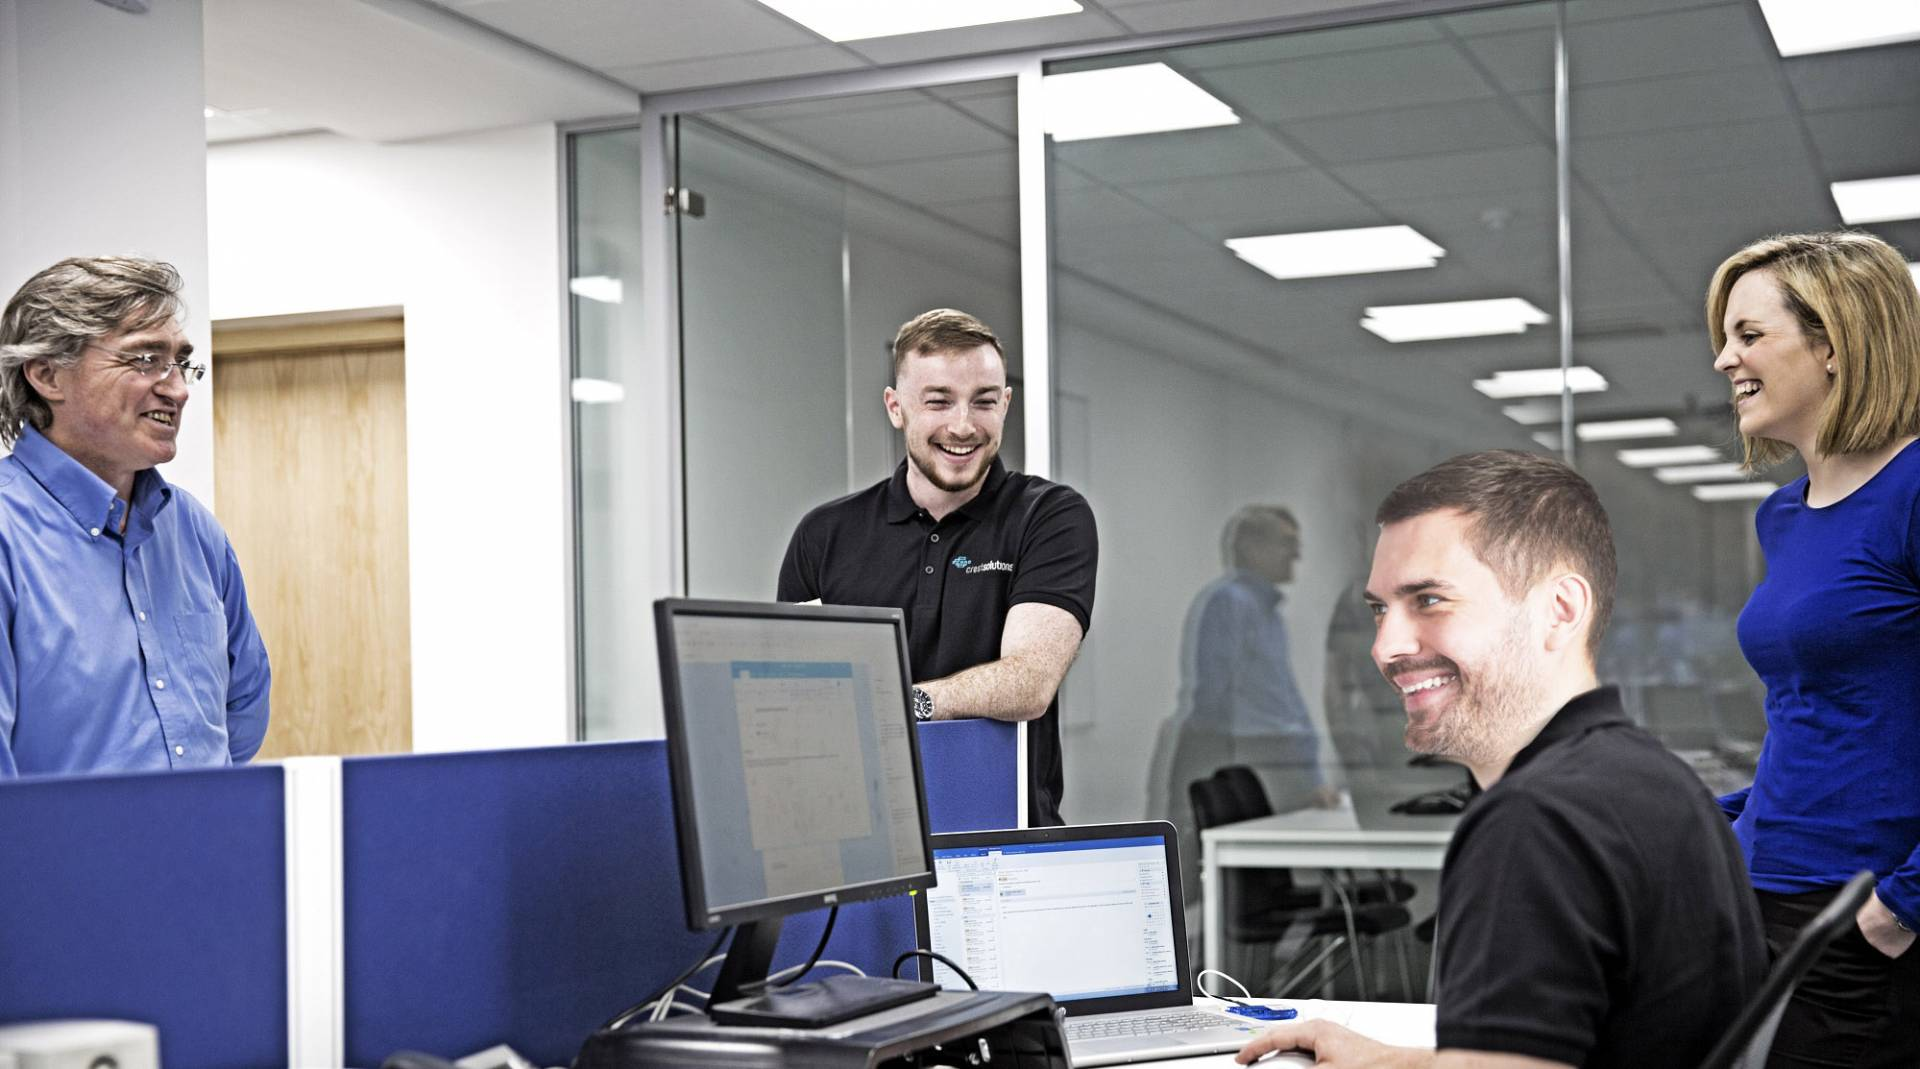 crest solutions cork ireland crest solutions UK a great place to work